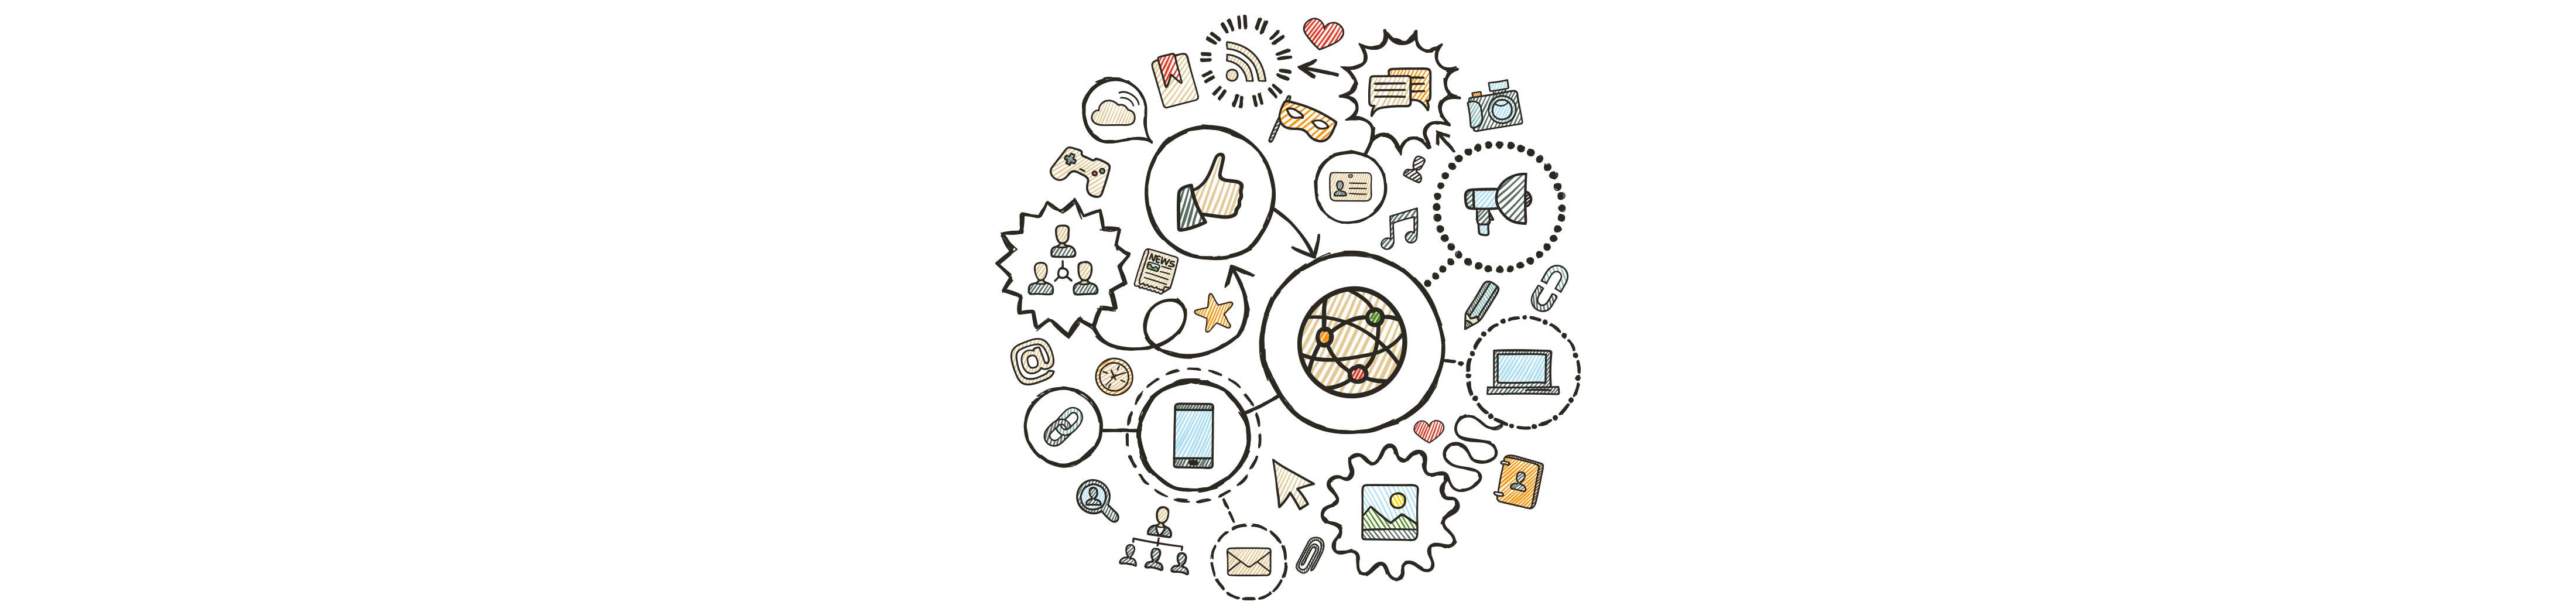 decorative illustration showing different digital icons arranged in and within a circle